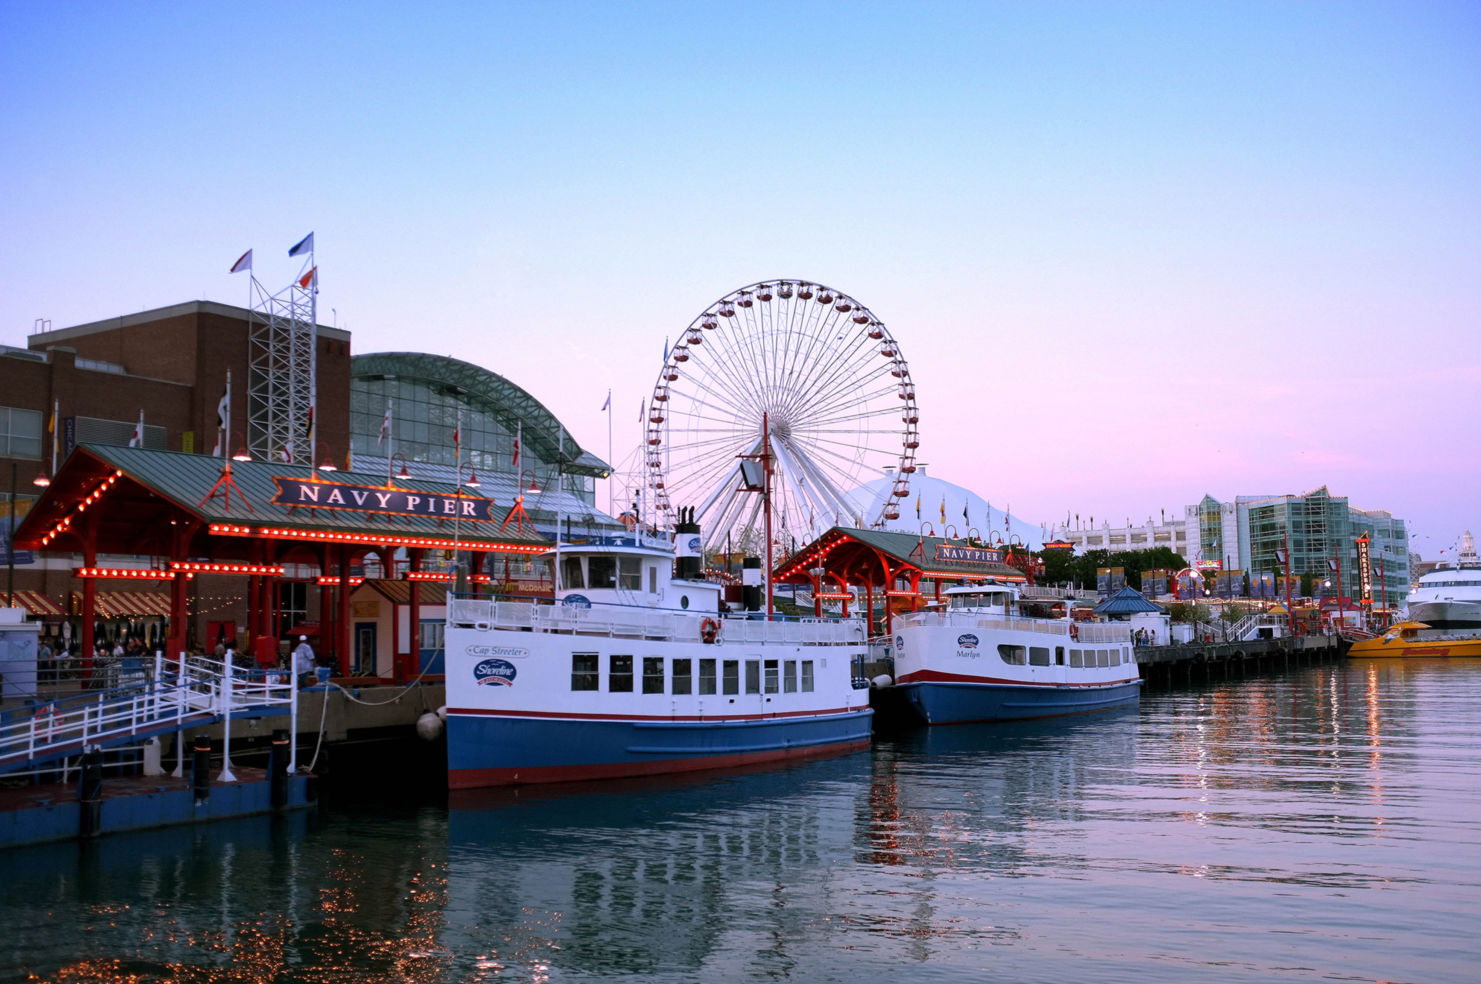 A view of Navy Pier Chicago